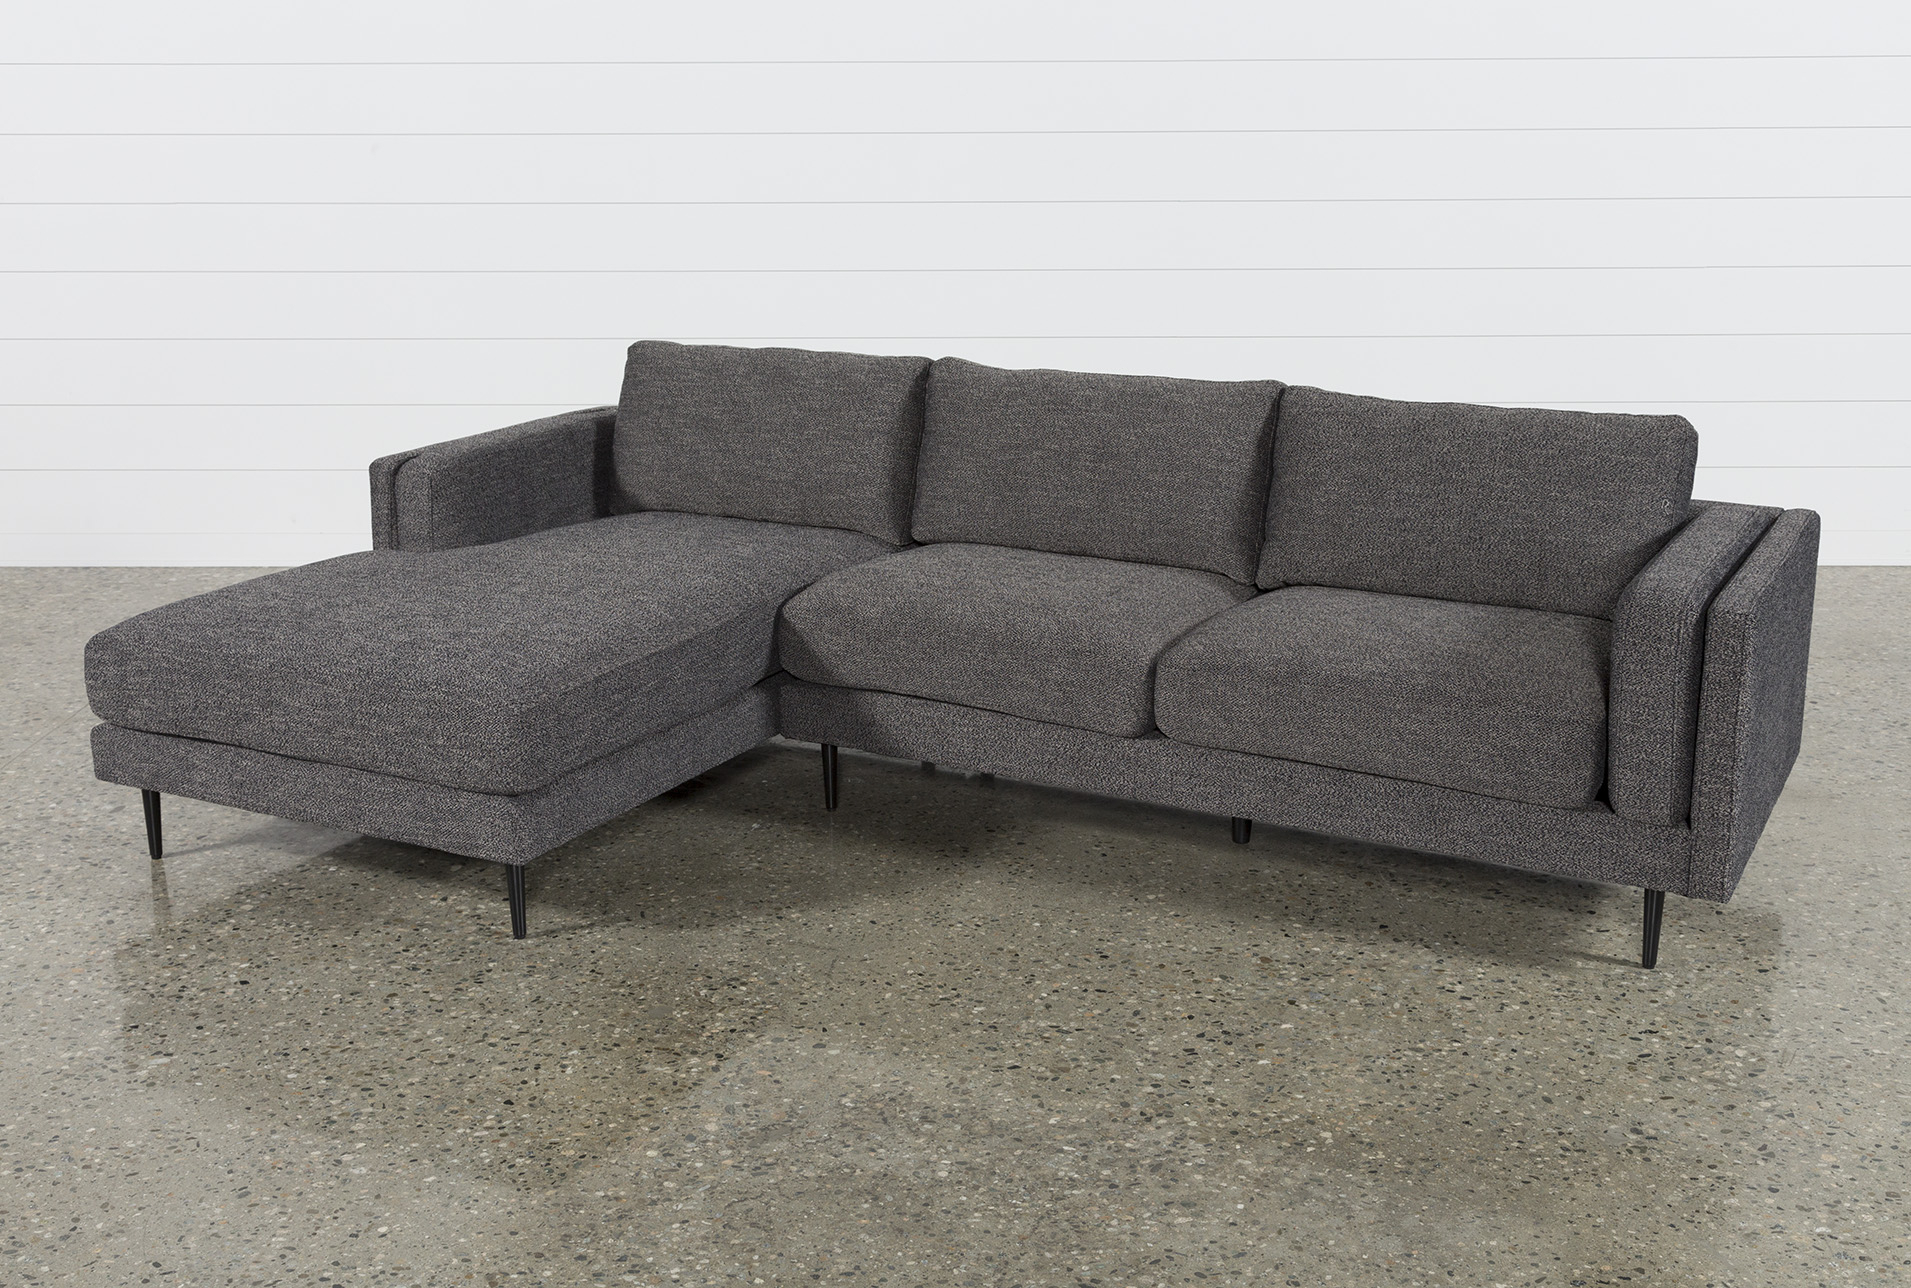 Aquarius Dark Grey 2 Piece Sectional W/laf Chaise In 2018 | Products Throughout Aquarius Dark Grey Sofa Chairs (Image 3 of 25)